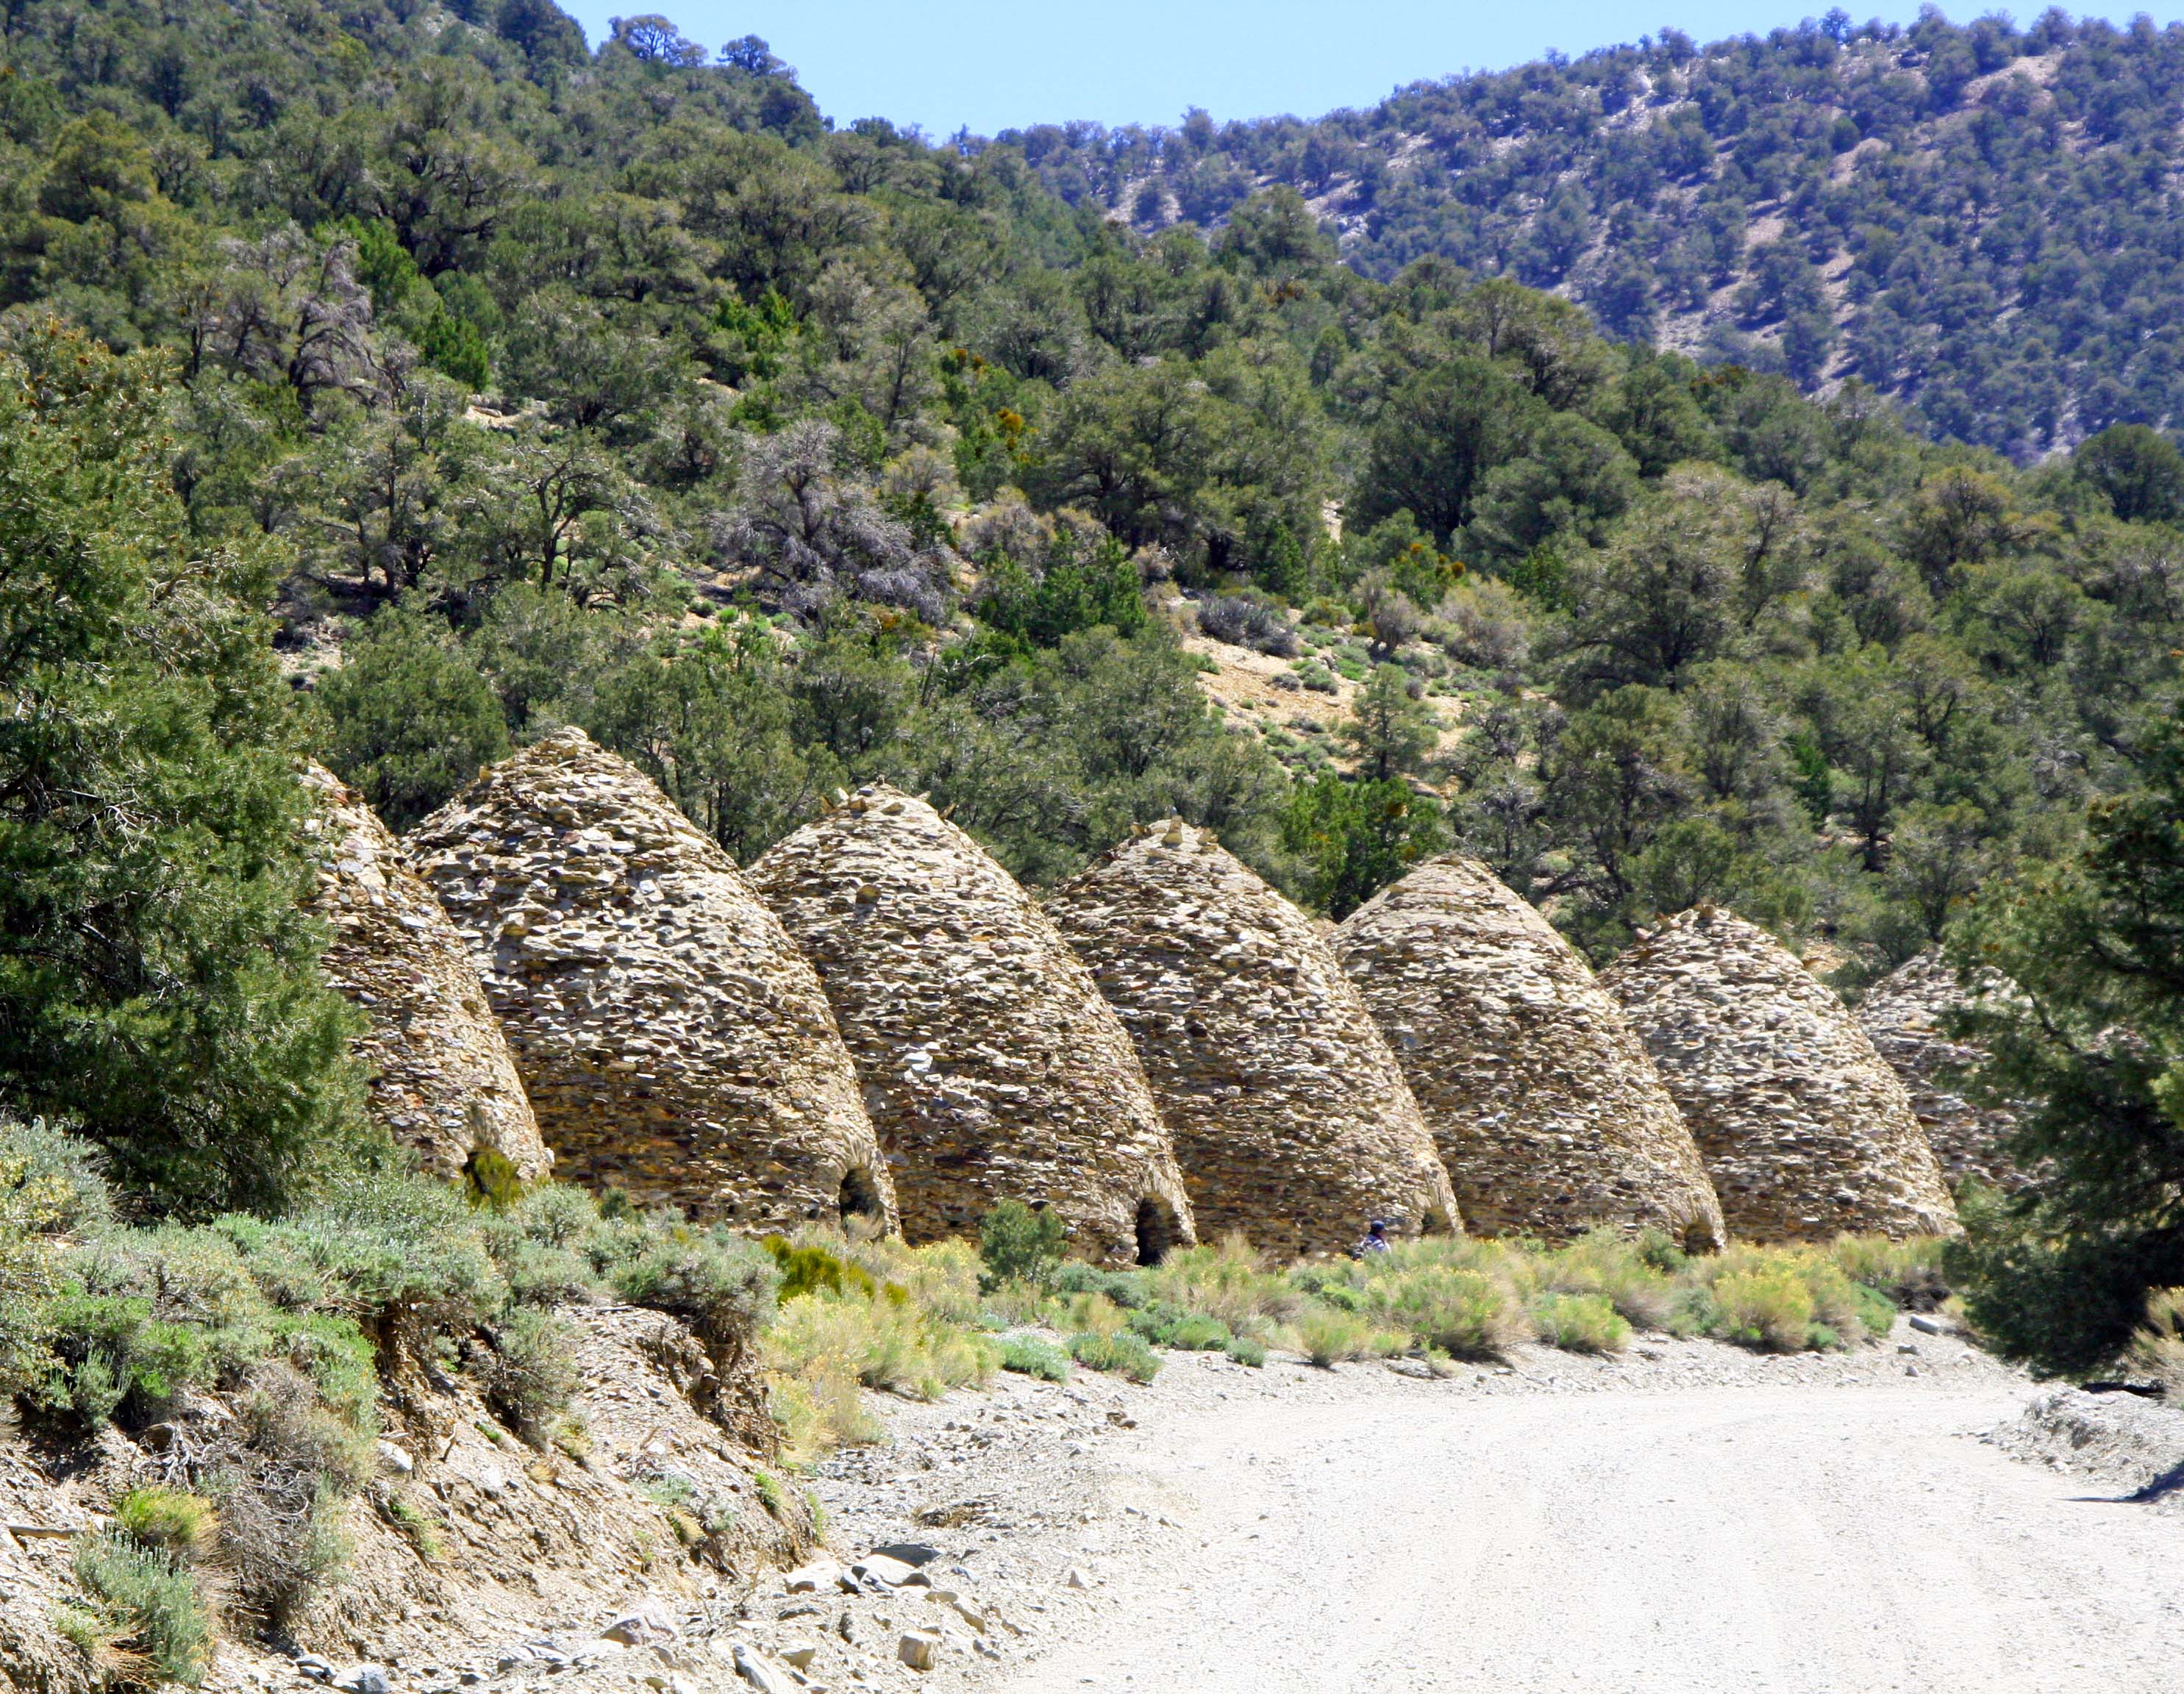 Charcoal kilns located in Death Valley.